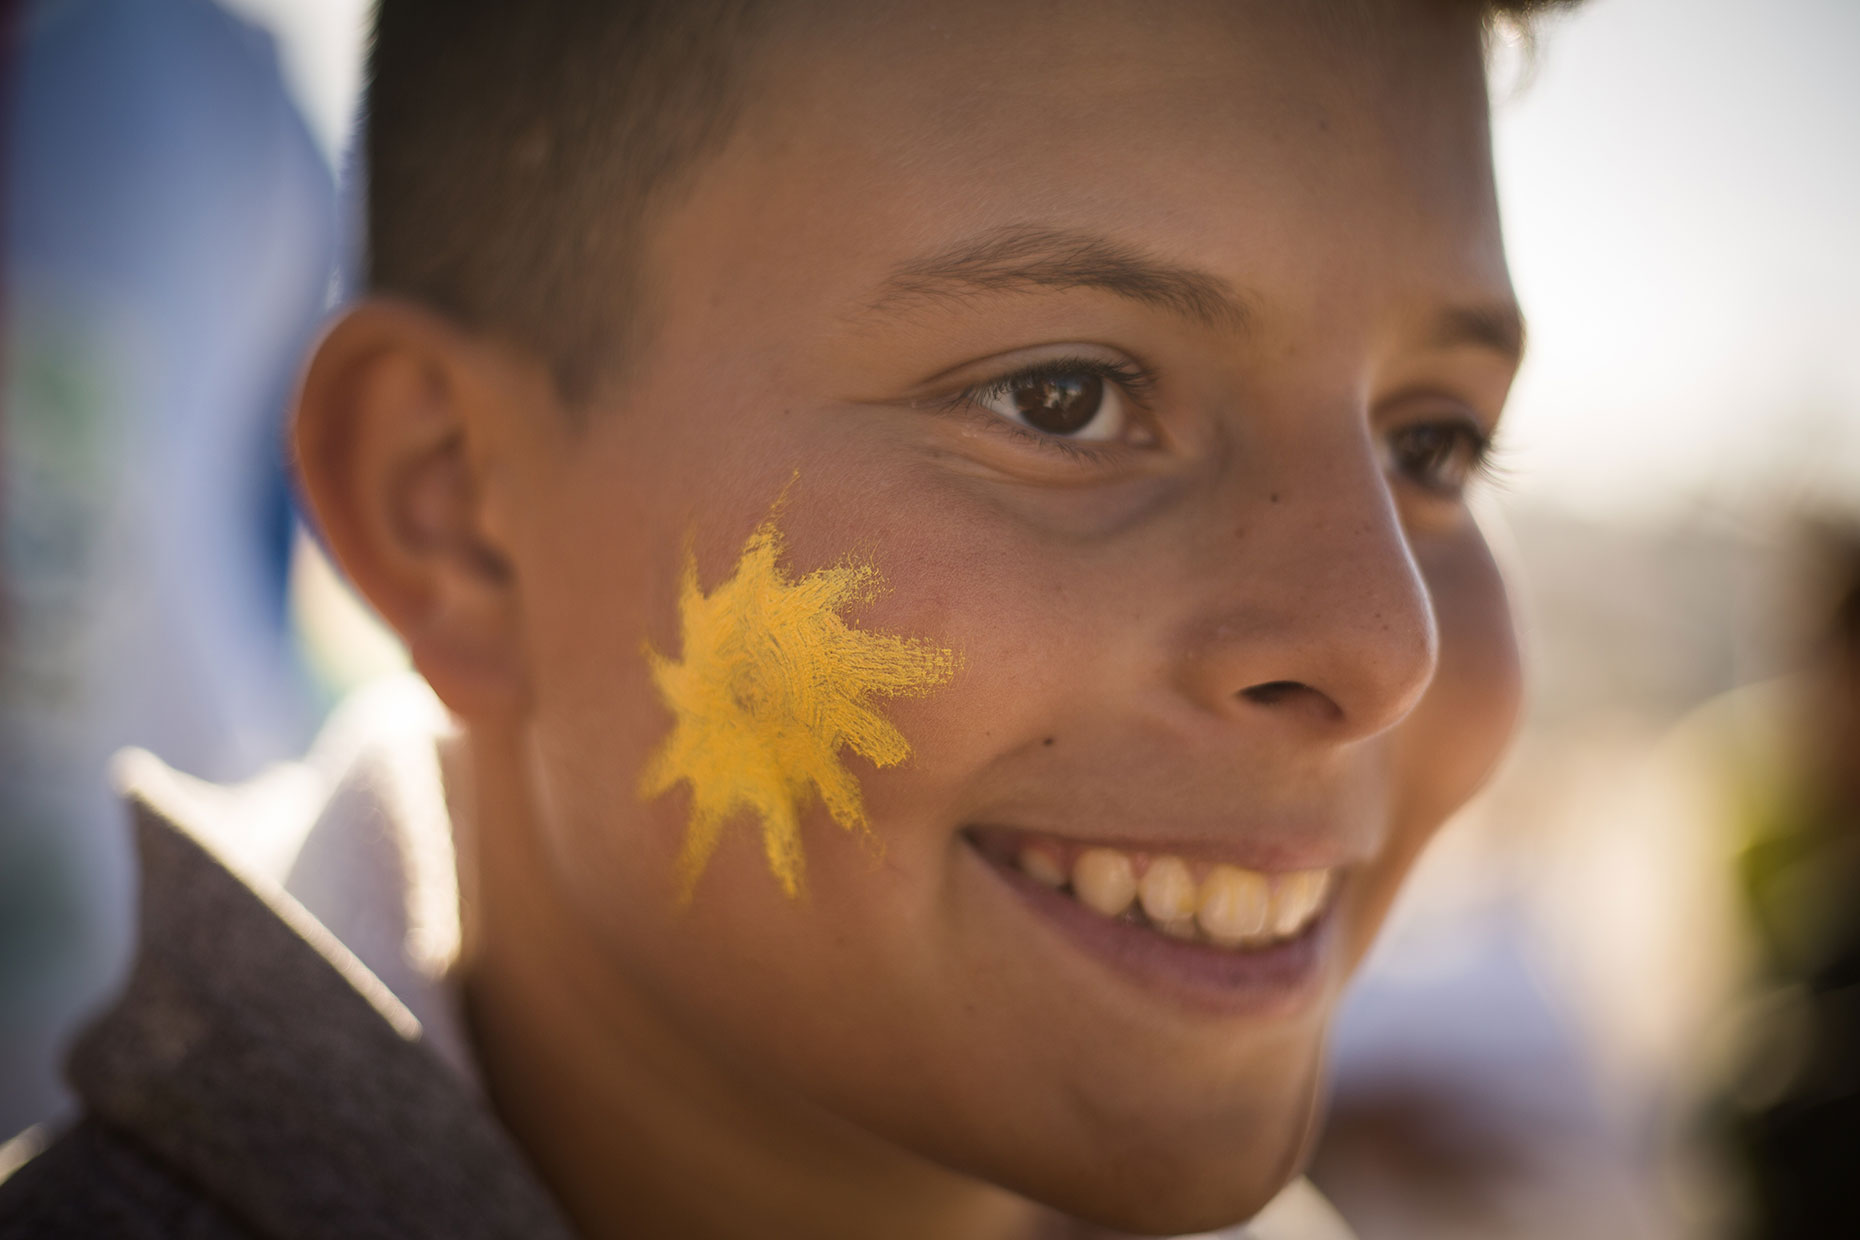 Greenpeace boy with sun on cheek, by Scotland photographer